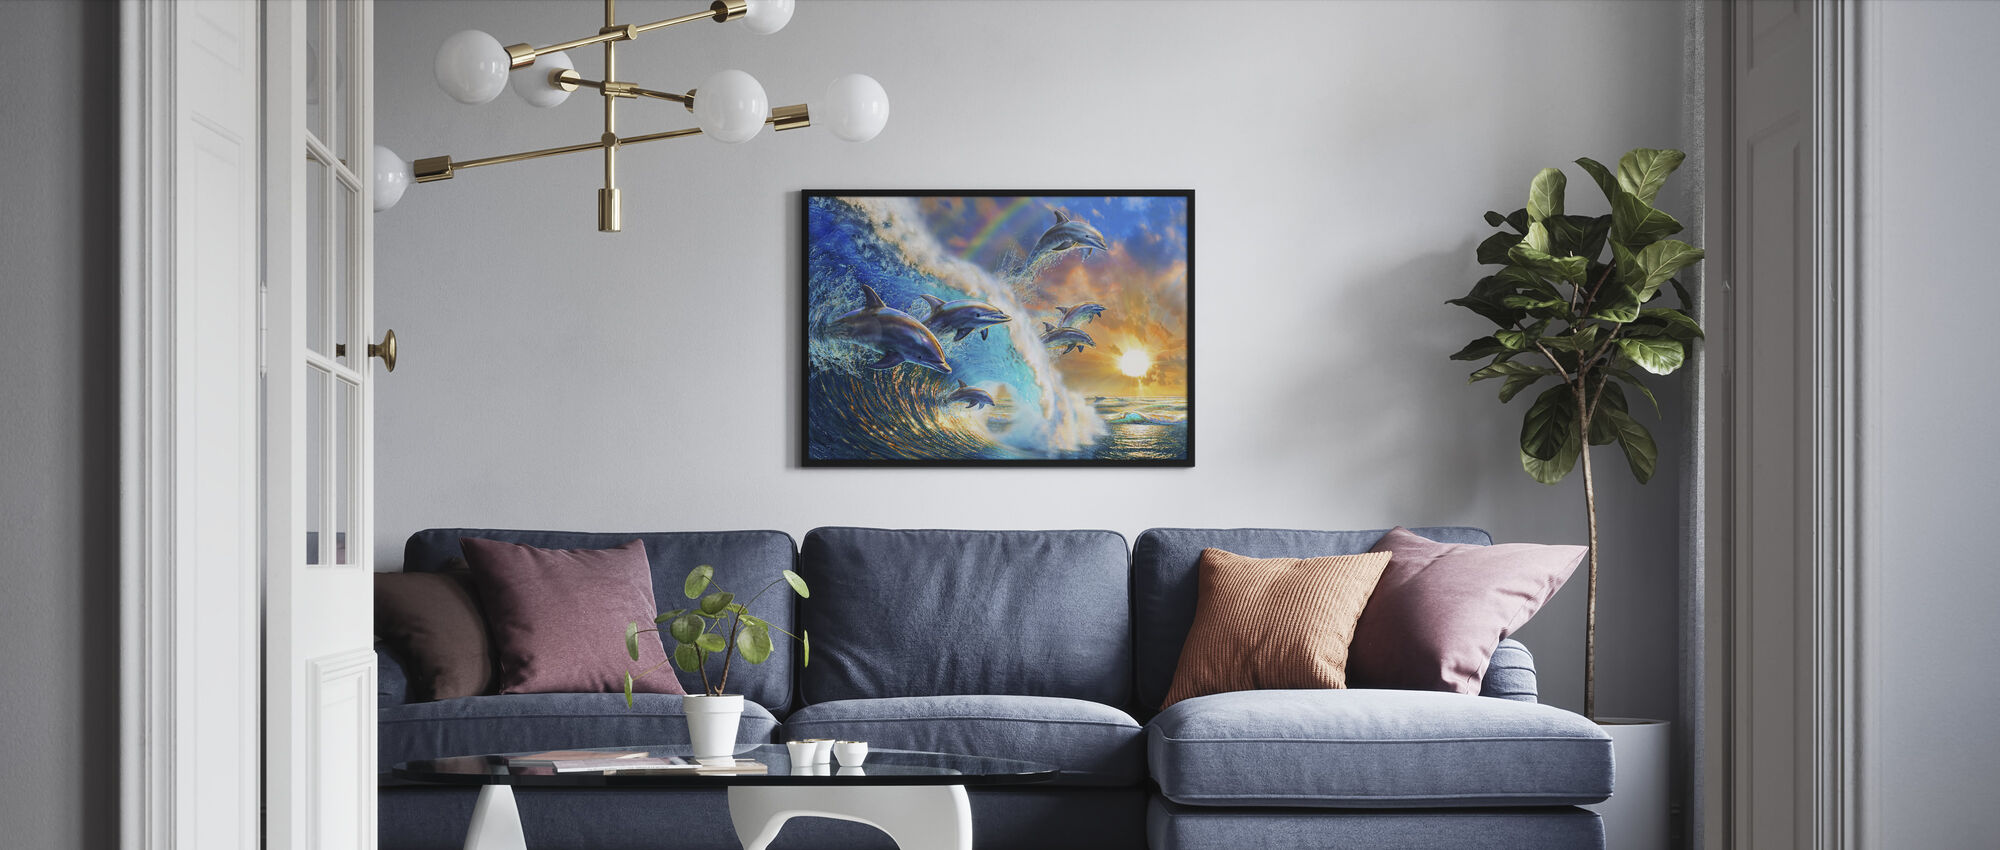 Dolphin Wave - Framed print - Living Room